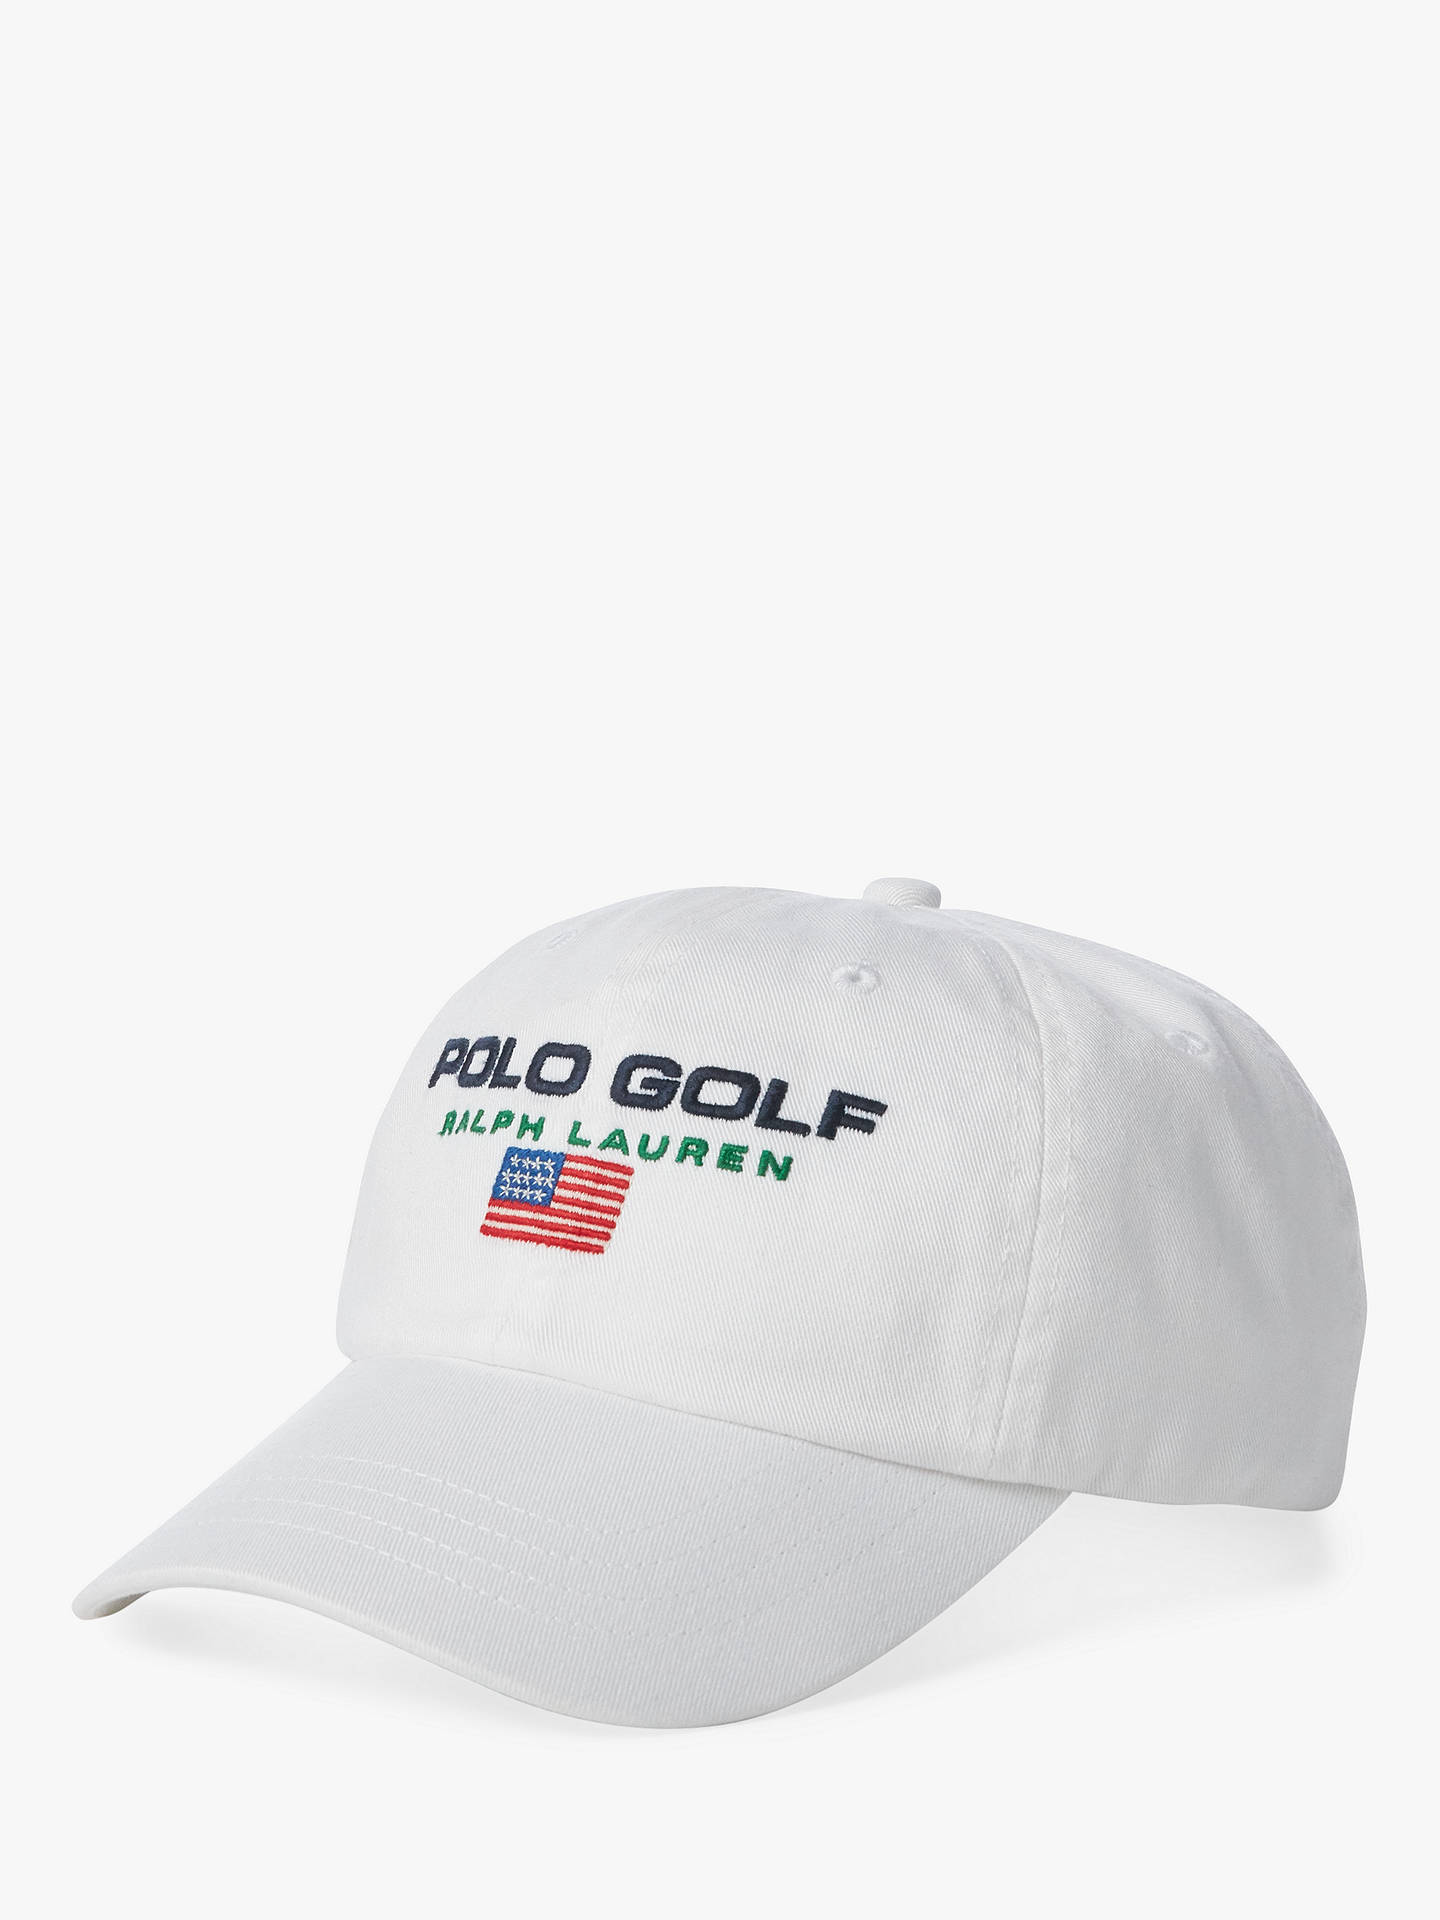 852c0bf9 Buy Polo Golf by Ralph Lauren Sports Cap, Pure White Online at  johnlewis.com ...